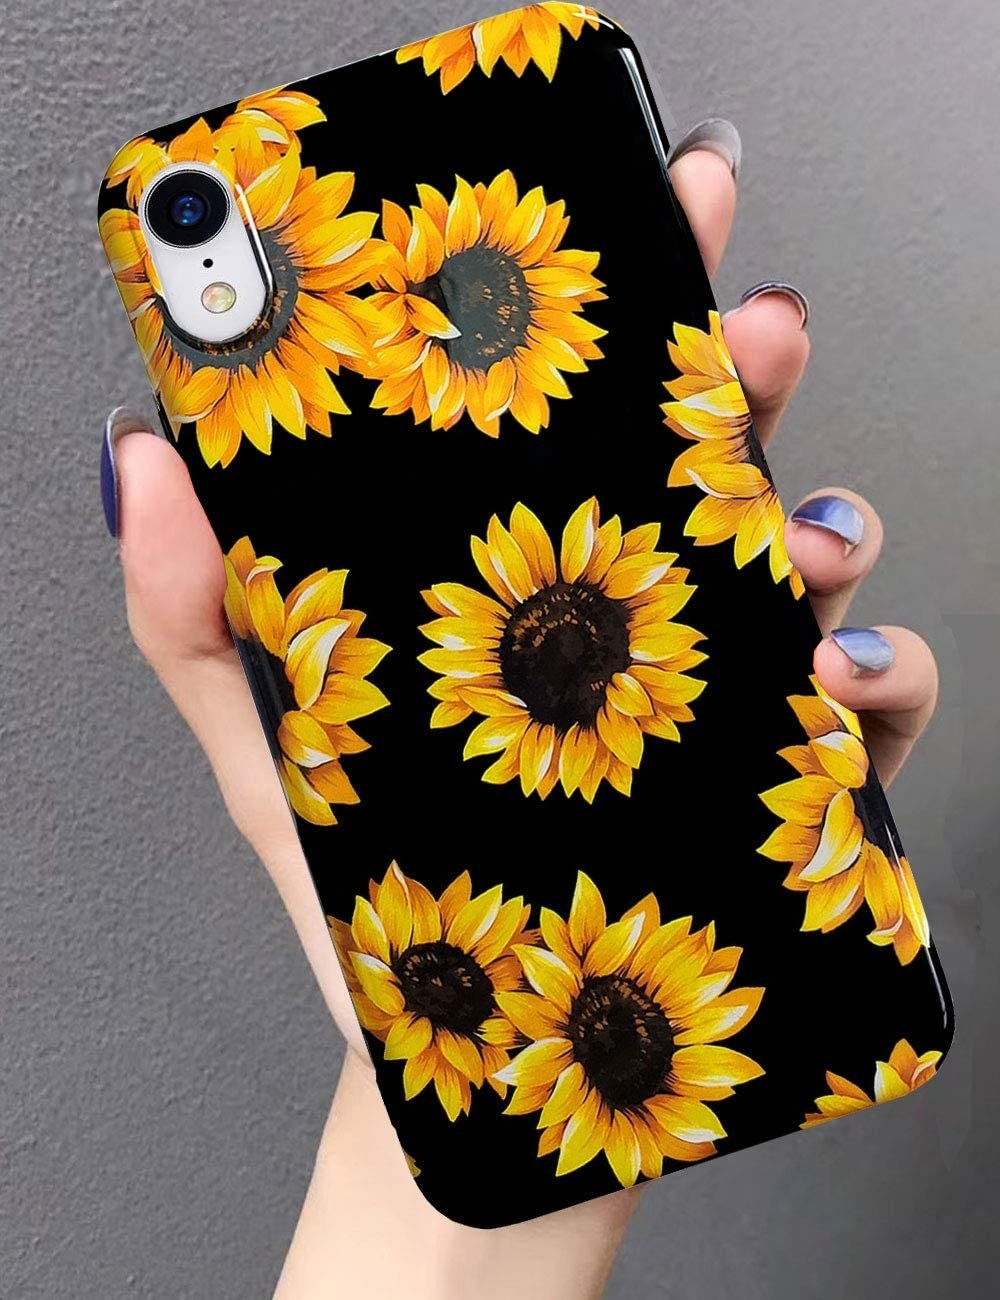 a model holding a black phone case with sunflowers on it